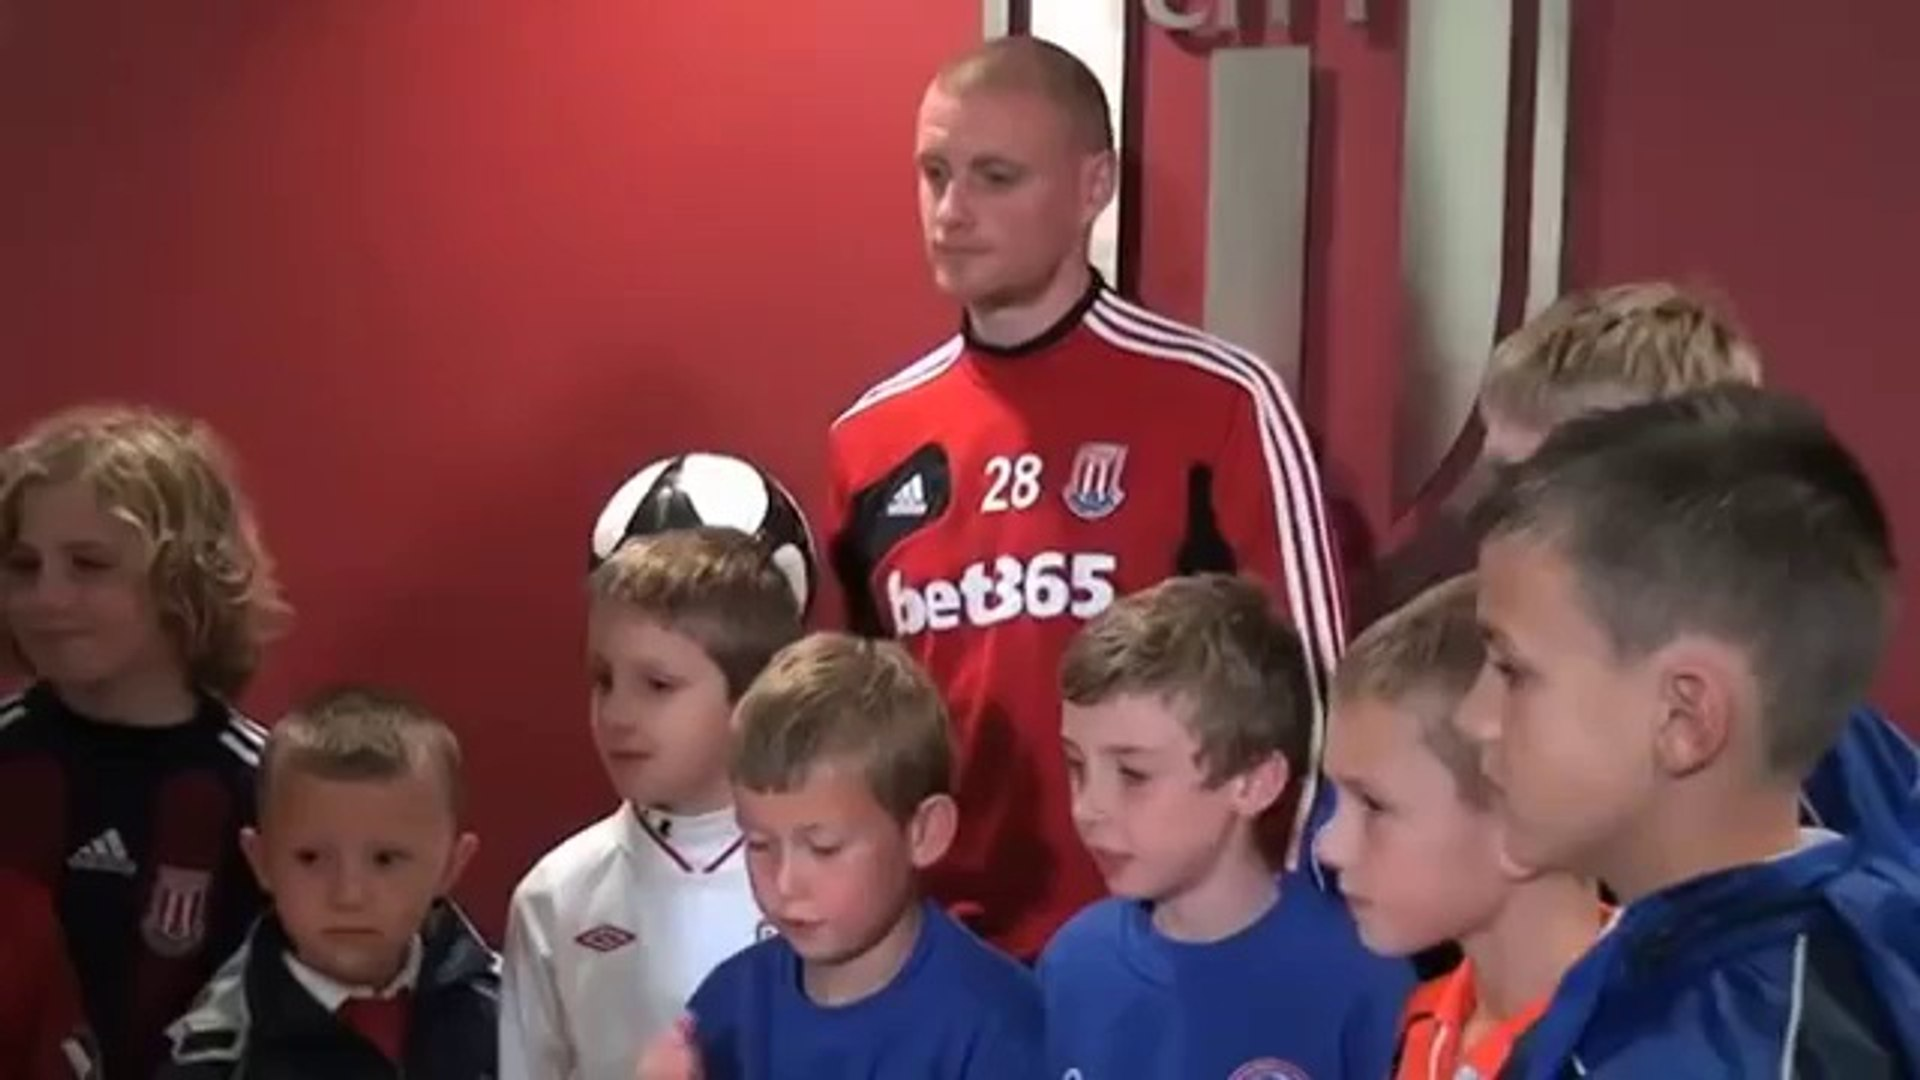 Stoke's Andy Wilkinson on inconsistent referees banning divers | Premier League 2012-13